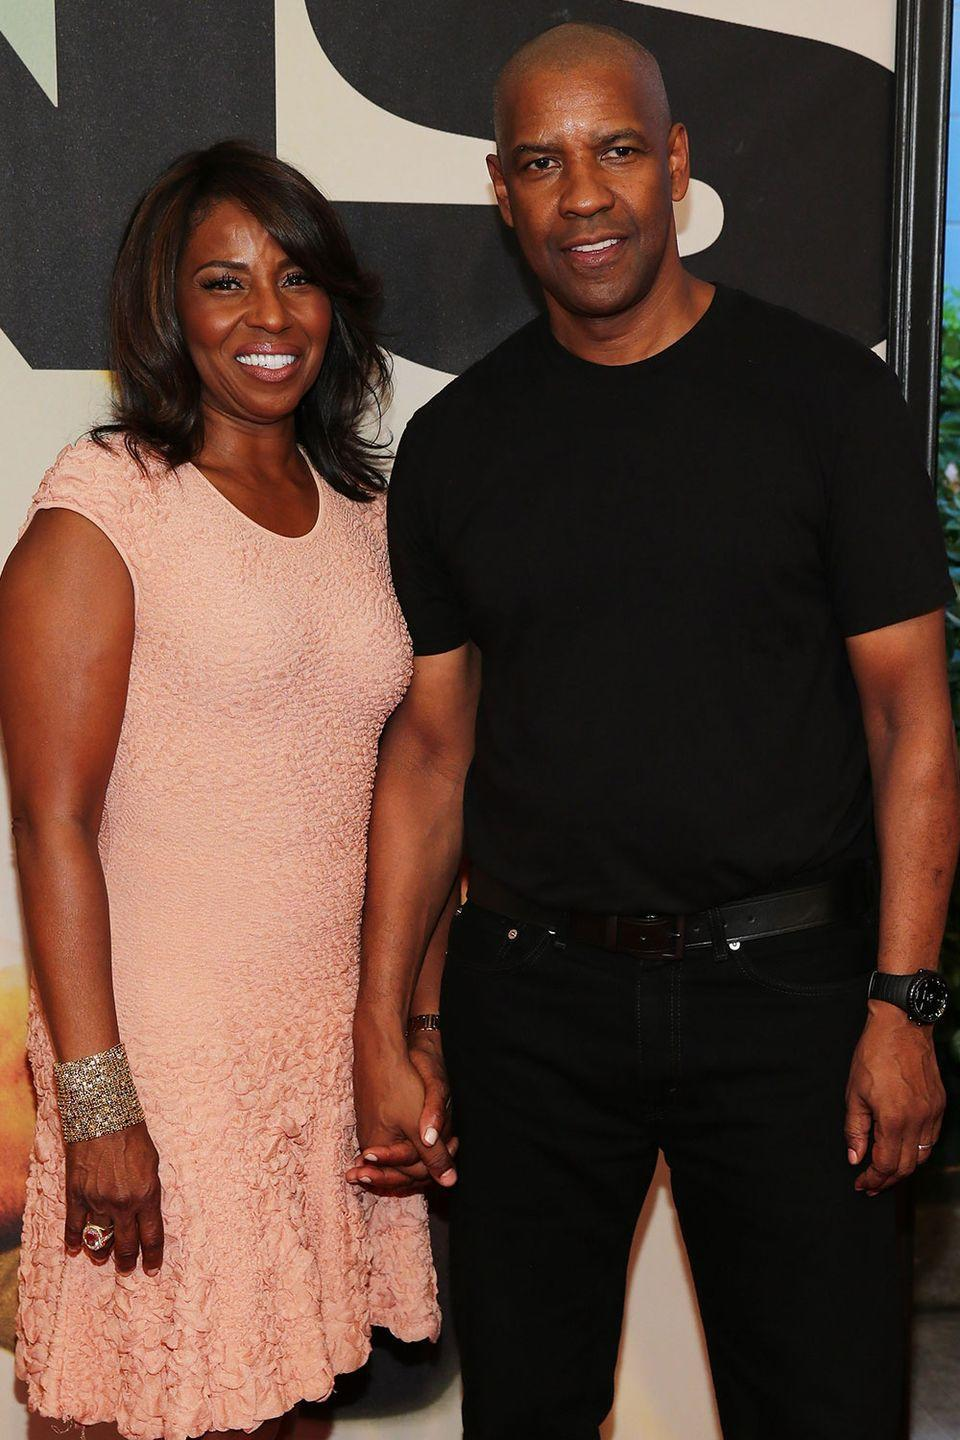 <p>The Washingtons both have the same pronounced chin. After more than 30 years together, it's a wonder they haven't become the same person.</p>